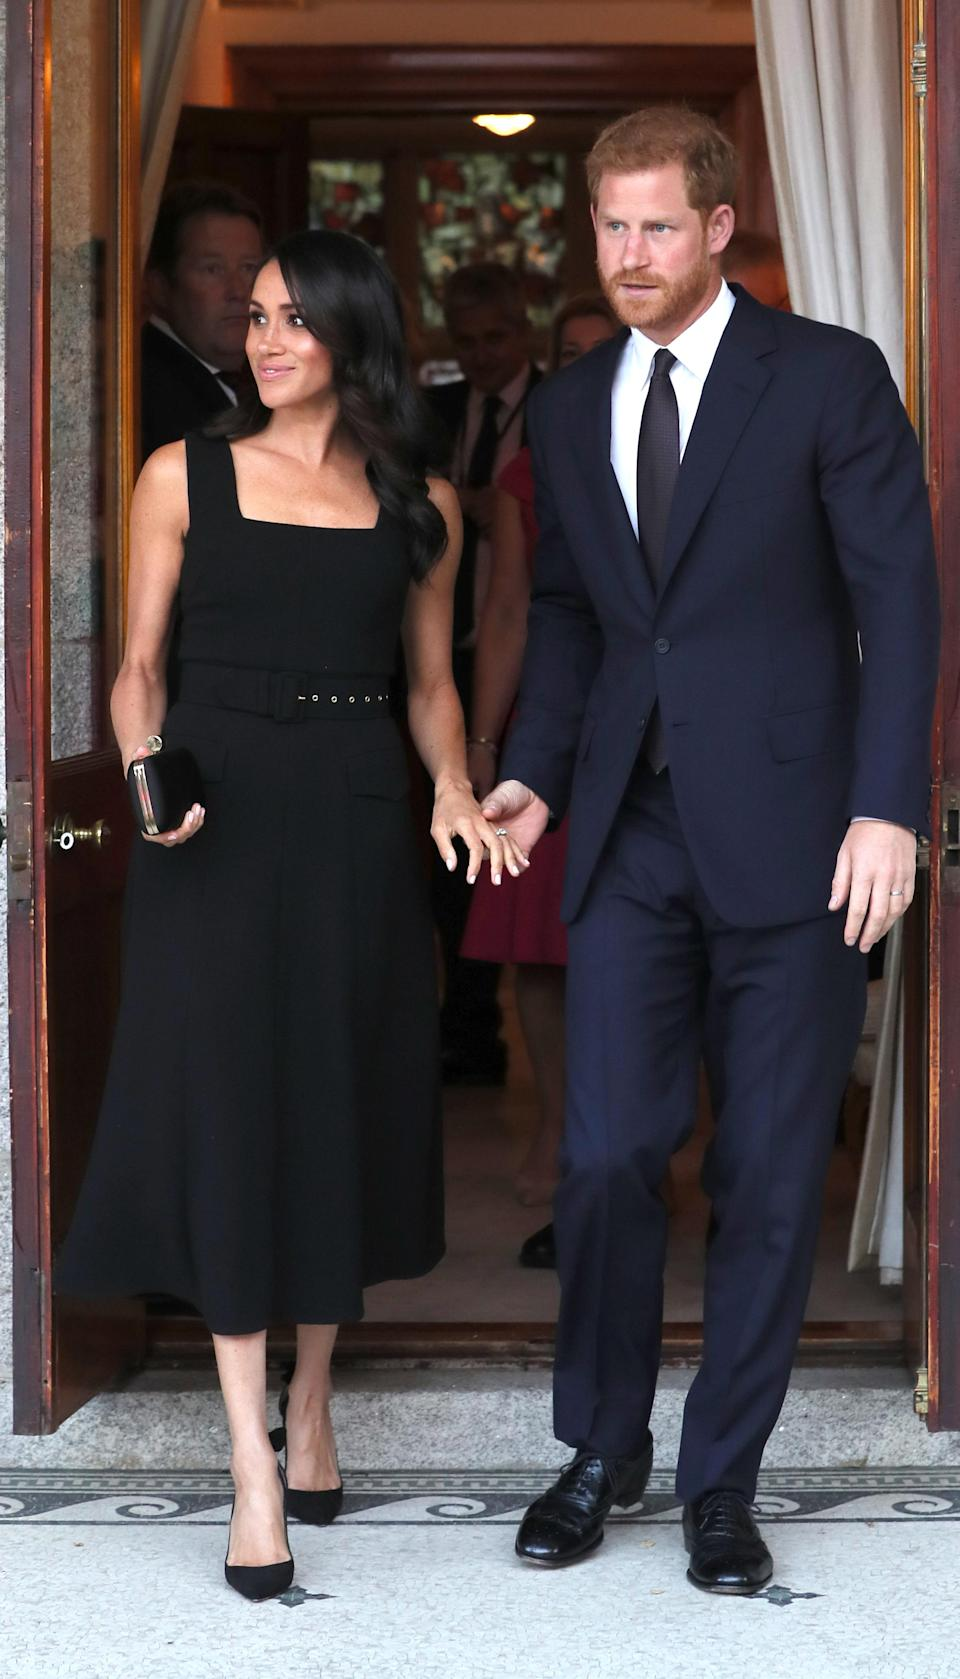 For a summer party at Glencairn House, the Duchess of Sussex changed into a black belted midi dress by Emilia Wickstead [Photo: Getty]